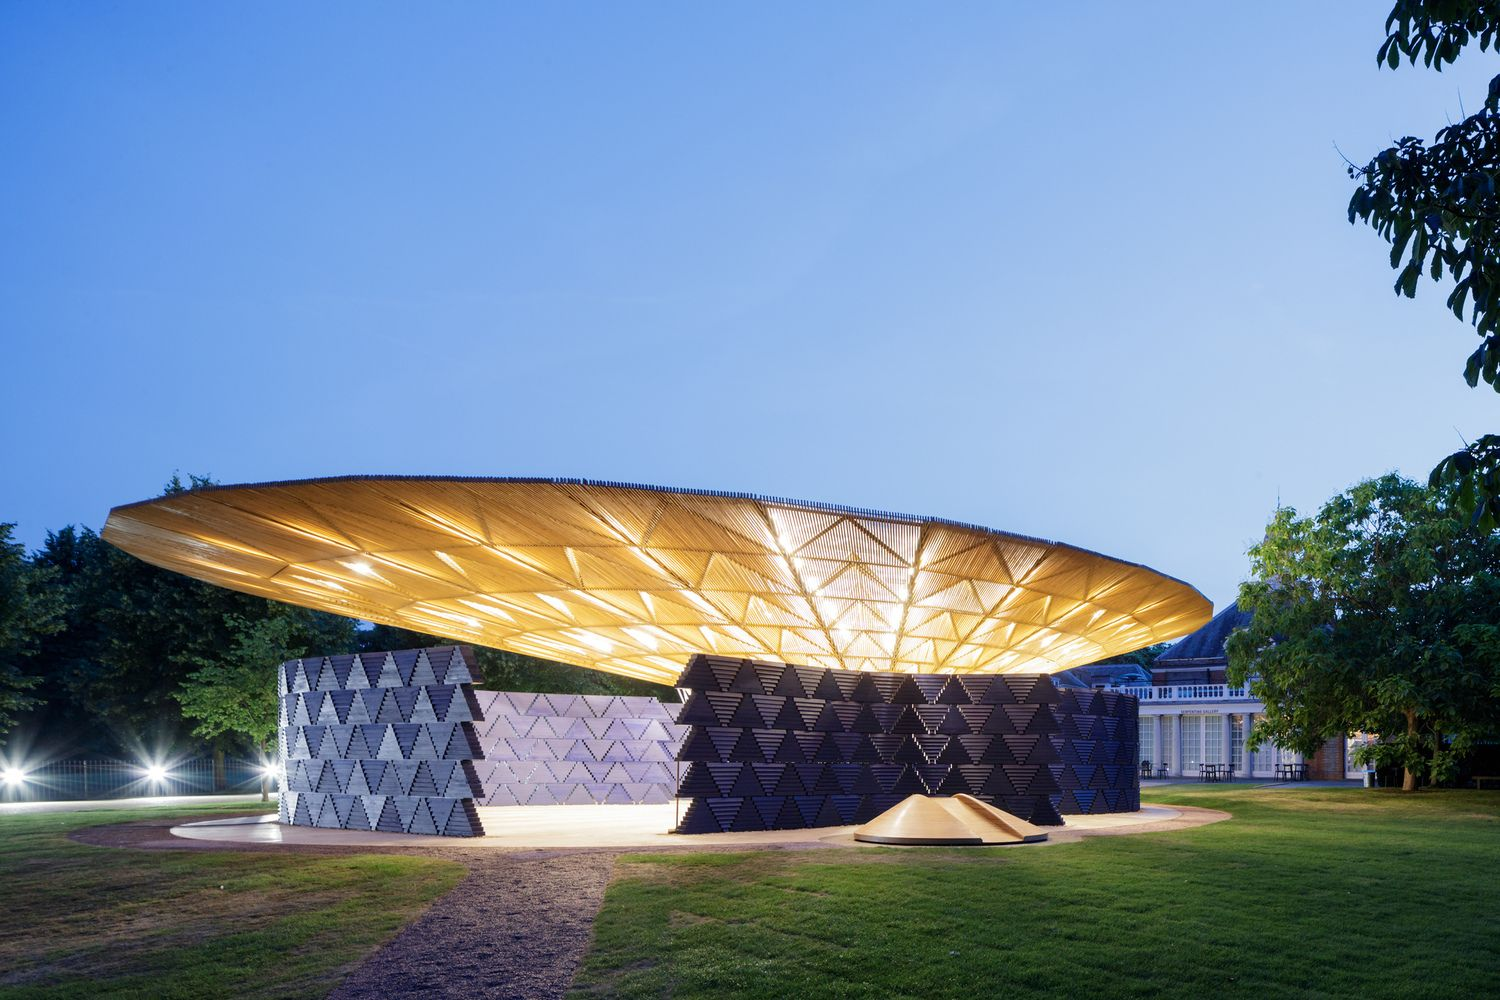 Gallery Of Critics Laud Francis Kere S 2017 Serpentine Pavilion For Its Simplicity And Authenticity 1 Rain Water Collection System Kensington Gardens Water From Air